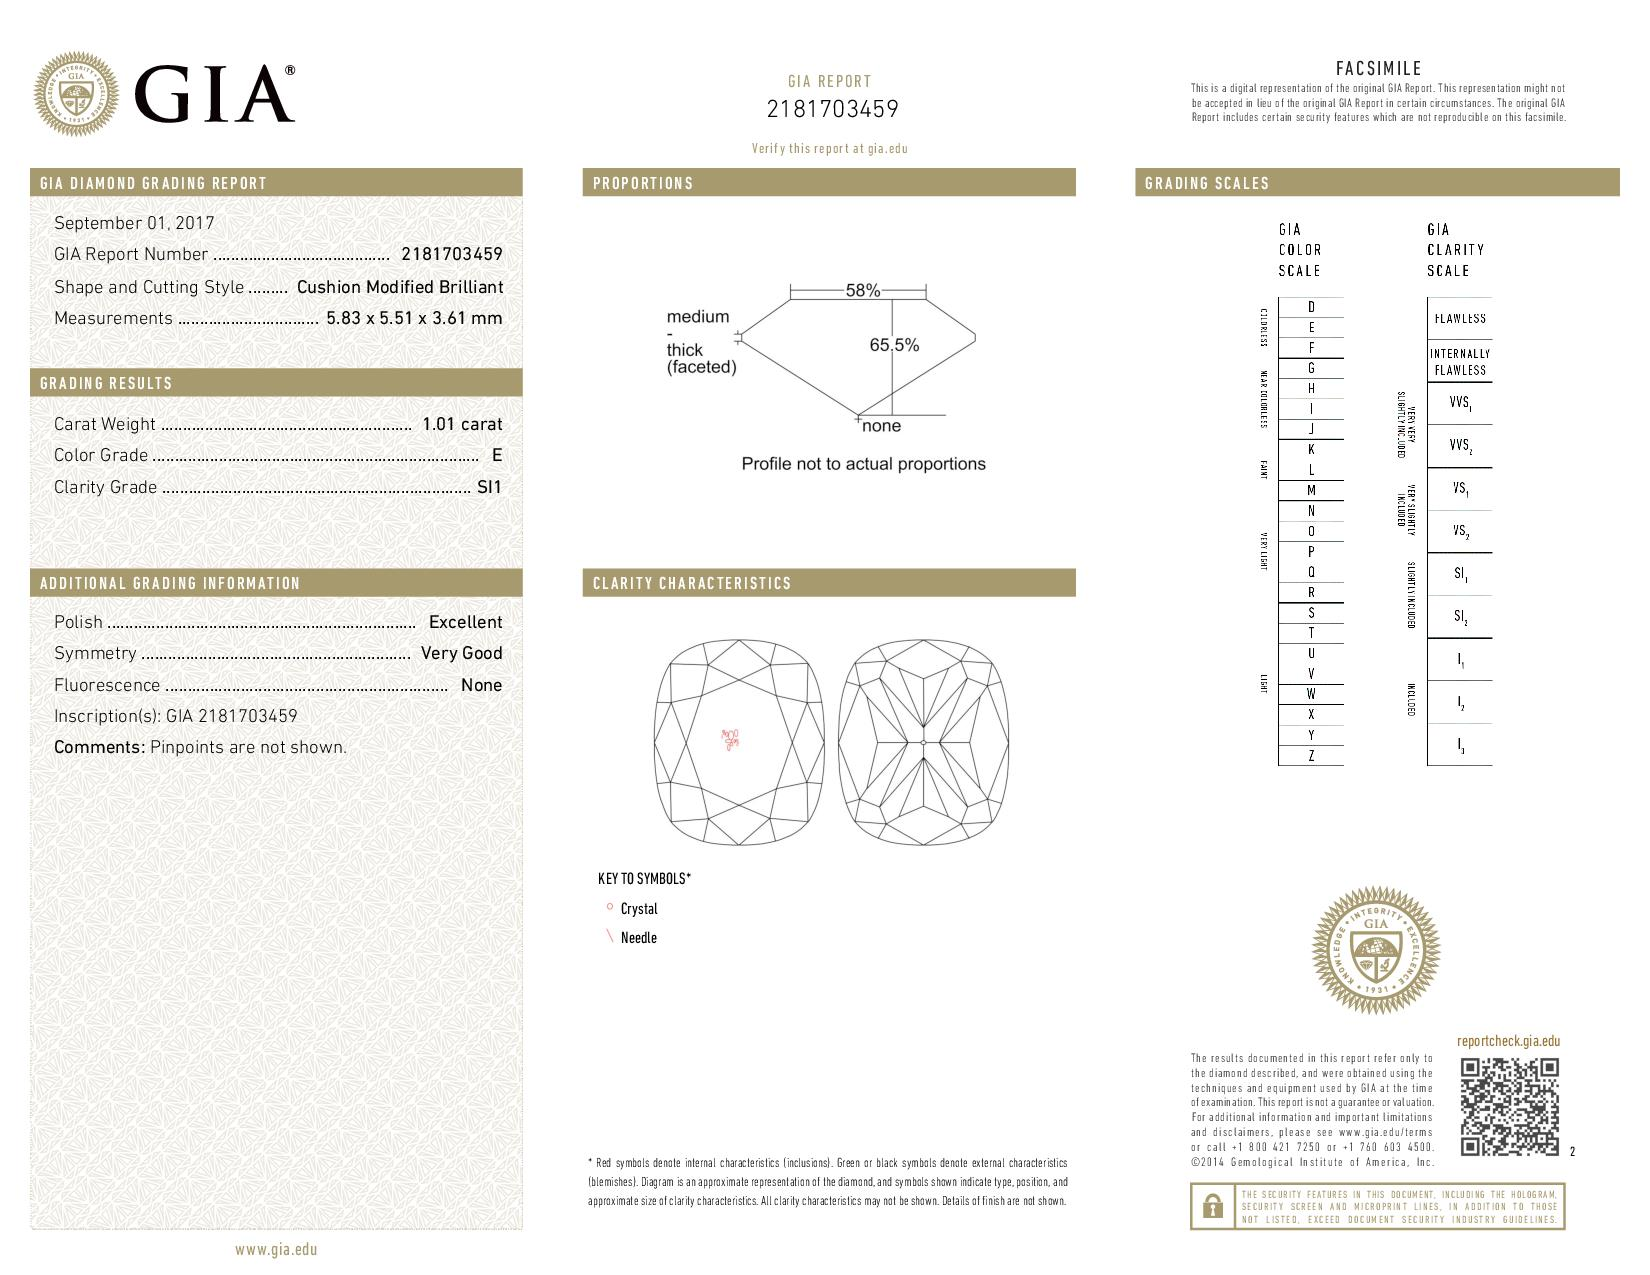 This is a 1.01 carat cushion shape, E color, SI1 clarity natural diamond accompanied by a GIA grading report.